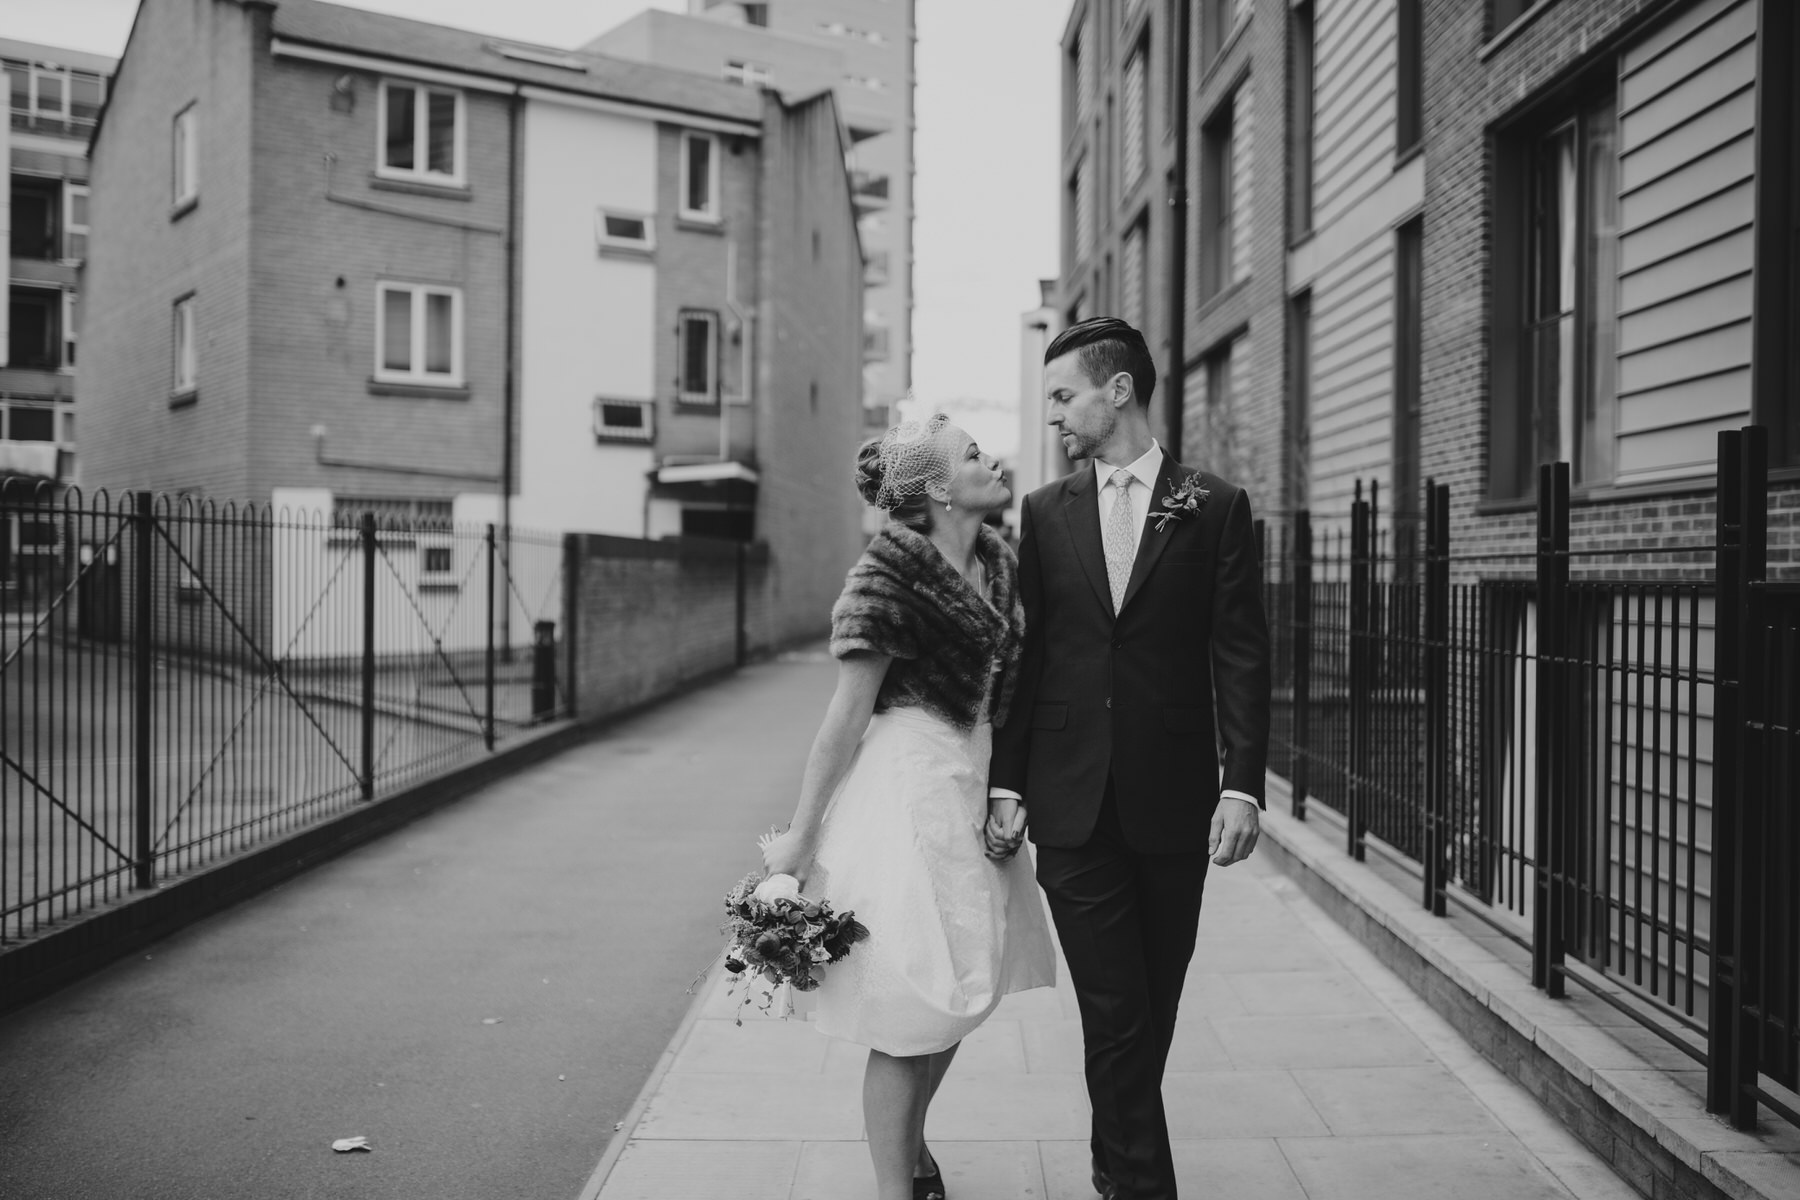 MS-Londesborough-Pub-wedding-Hackney-alternative-photographer-84-last-minute-kiss-bride-groom-before-unplugged-ceremony.jpg